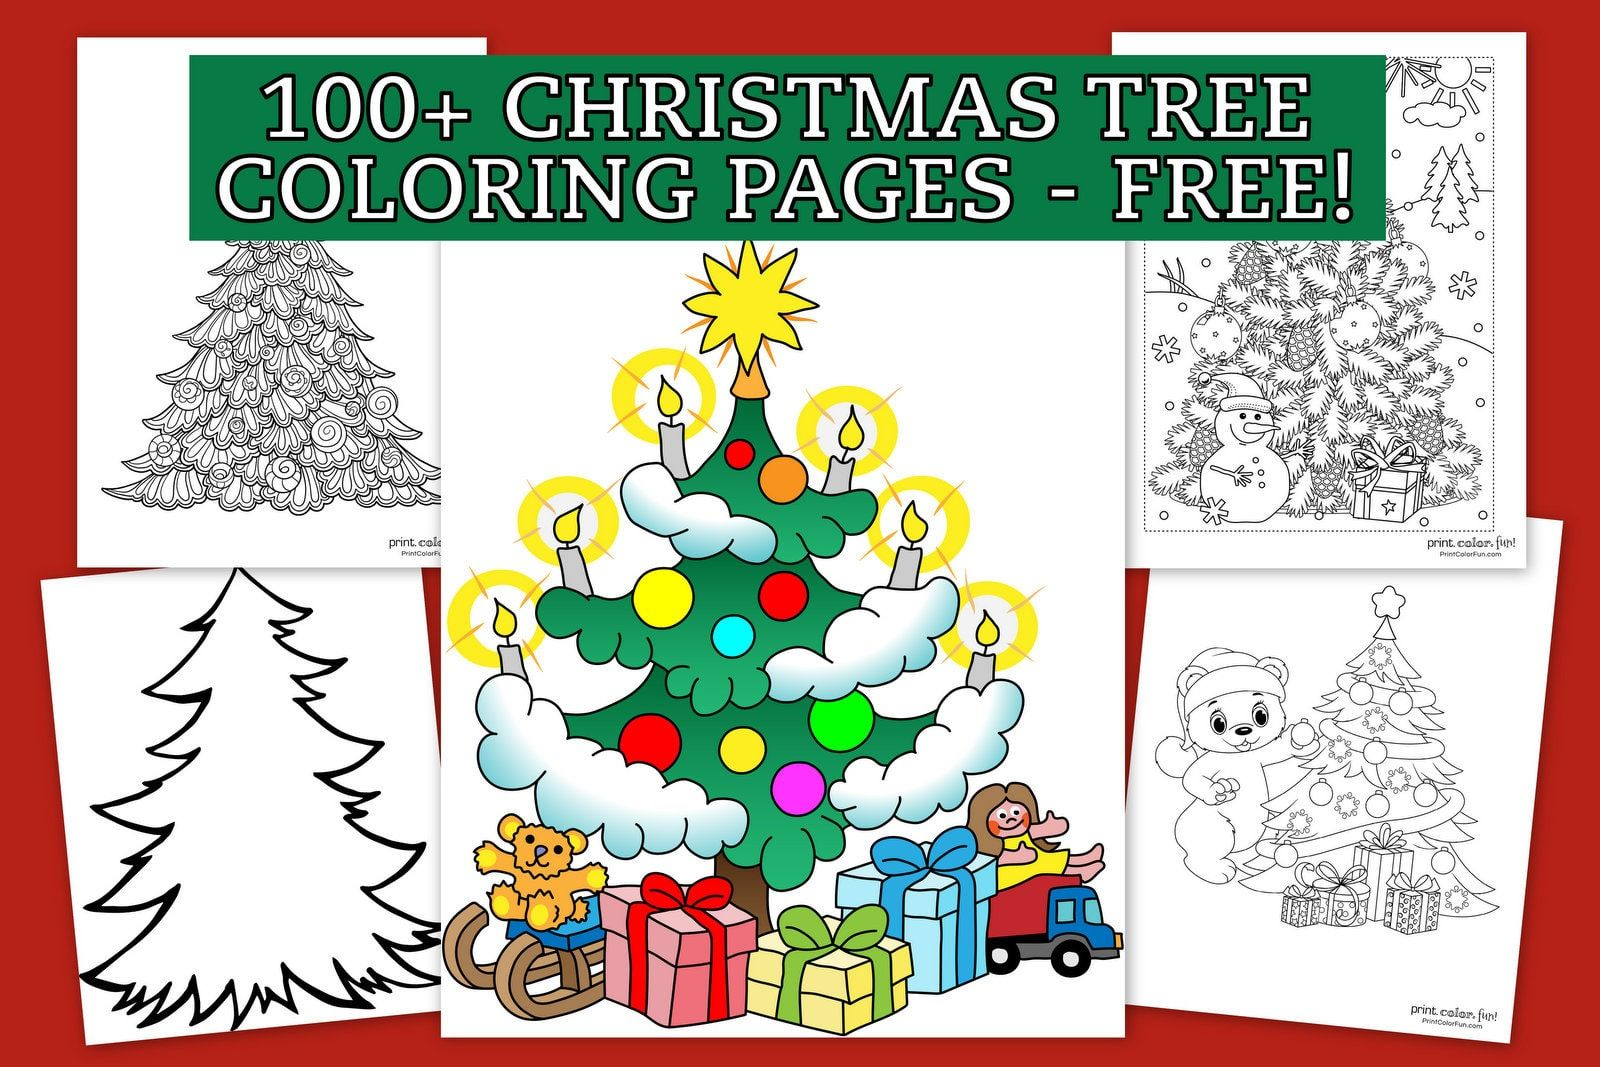 These Cheery Christmas Trees Are All Ready To Decorate And There Are More Christmas Tree Coloring Page Tree Coloring Page Printable Christmas Coloring Pages